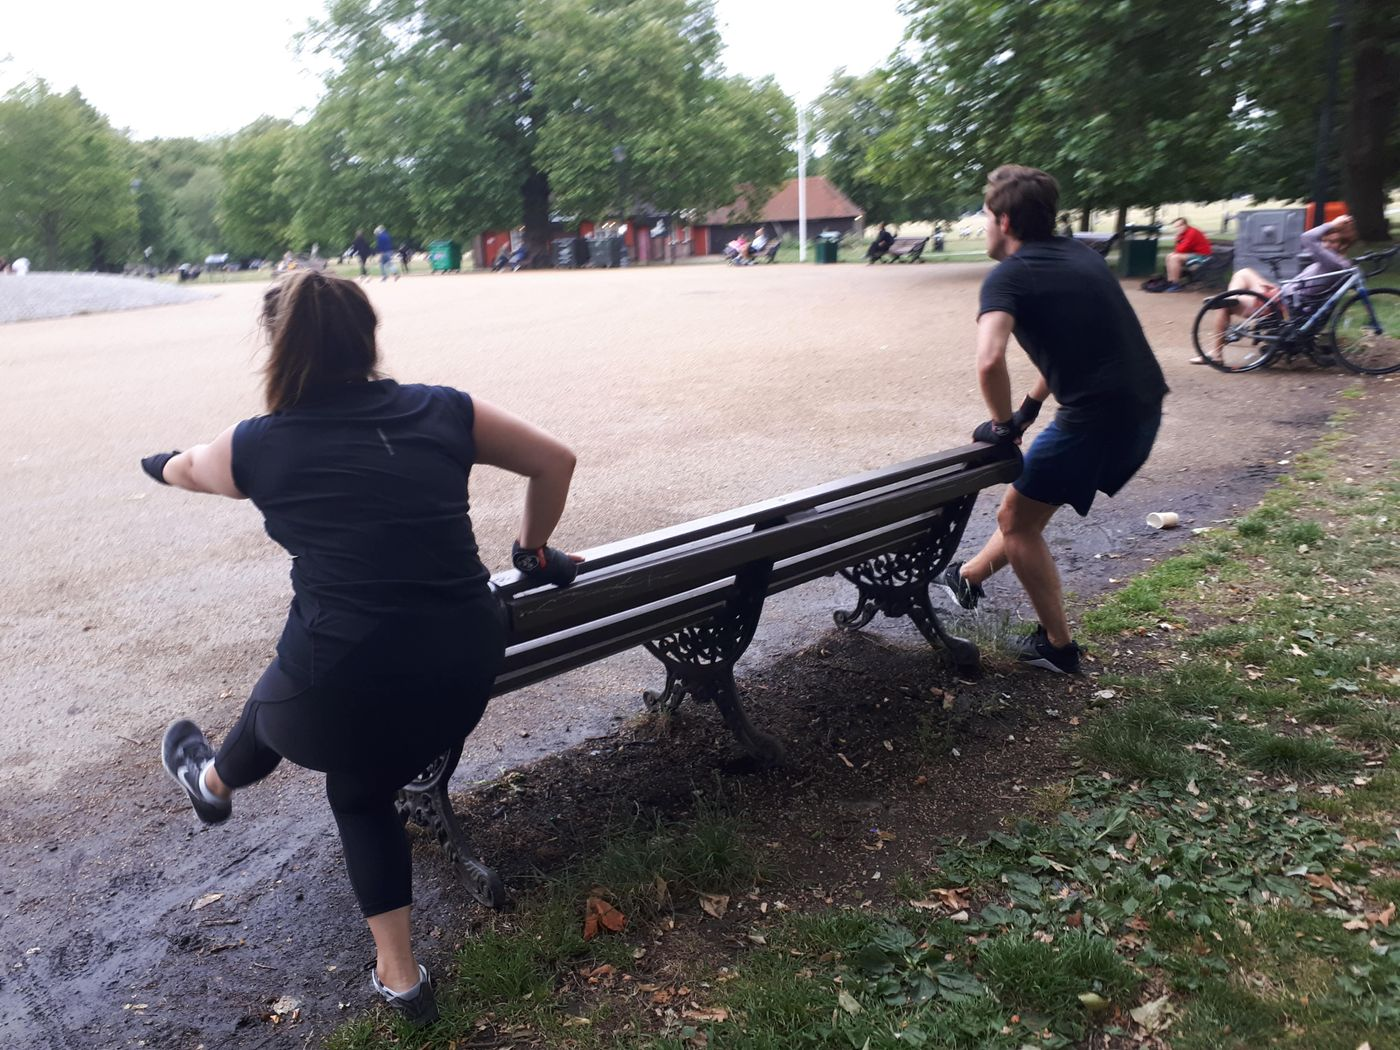 Bench assisted Pistol squats as part of a killer class in Clapham Common tonight